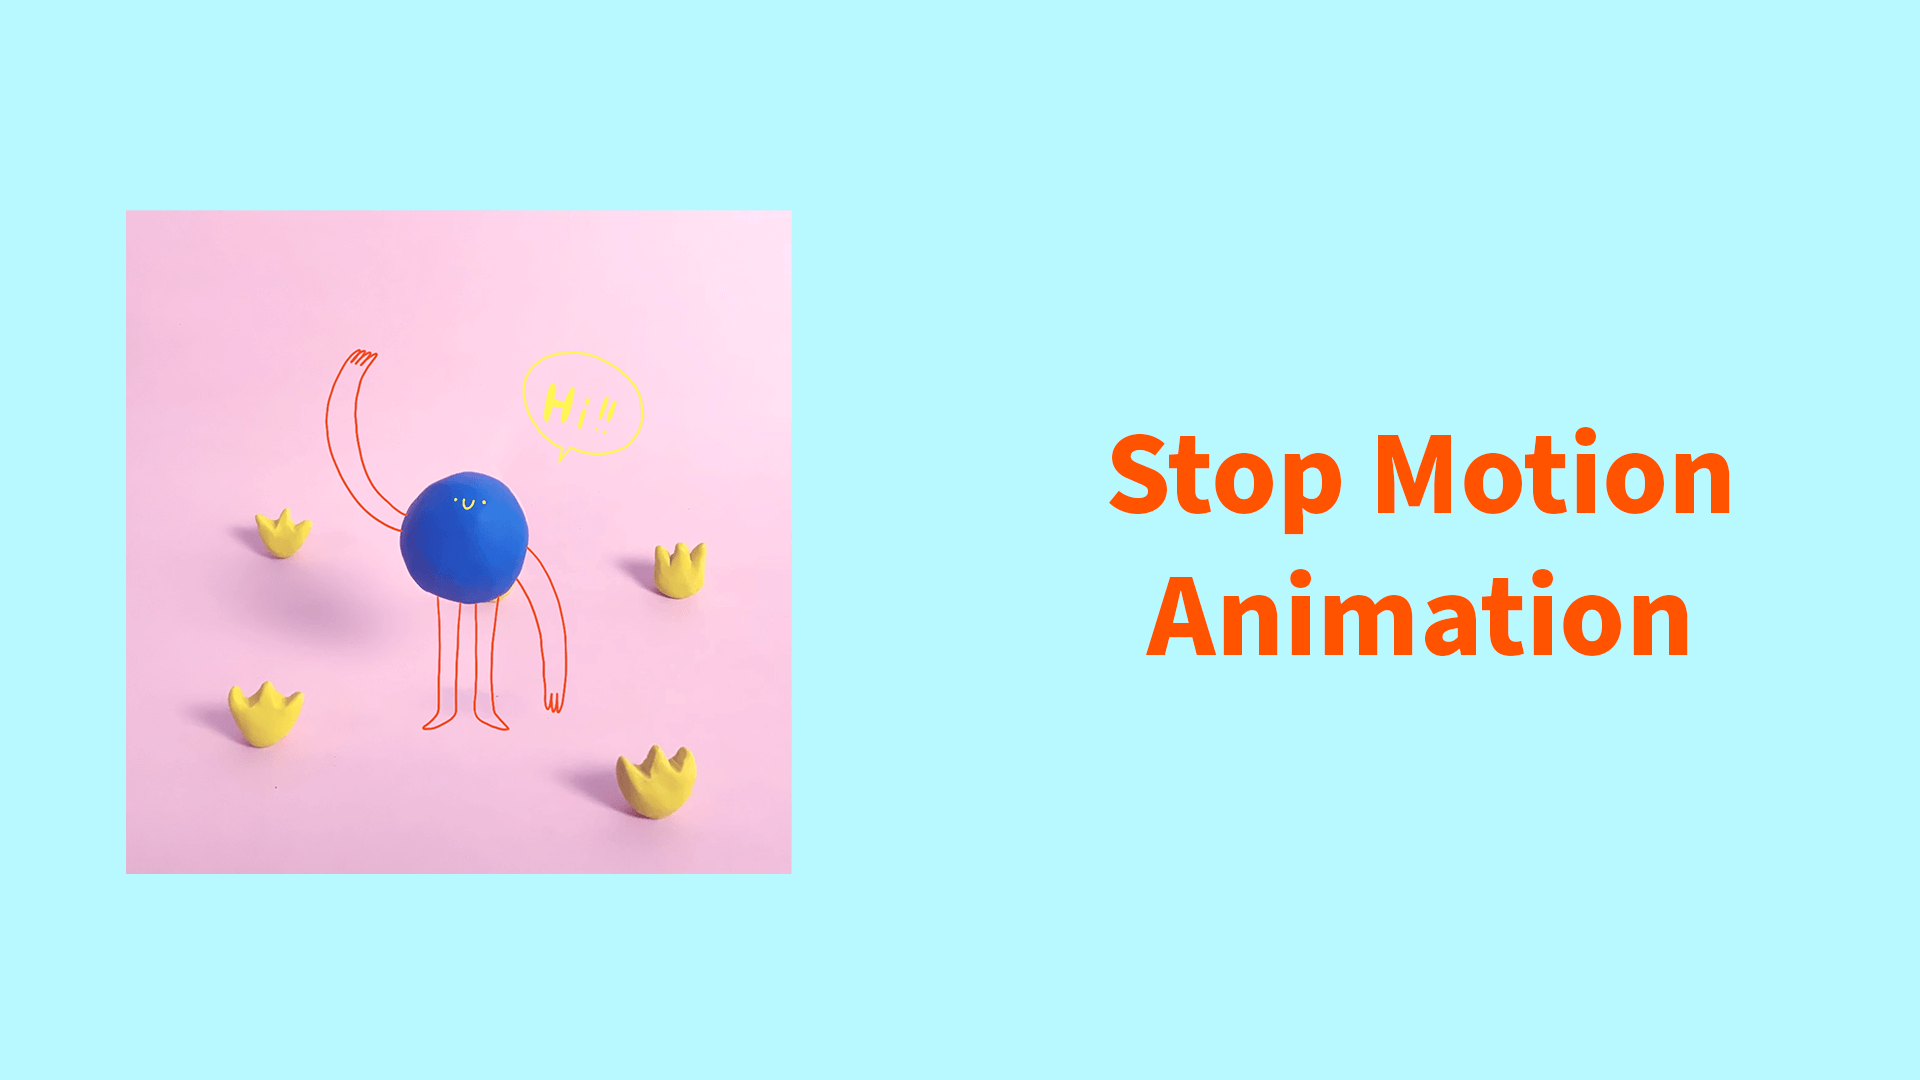 AeJuice - Stop Motion Animation